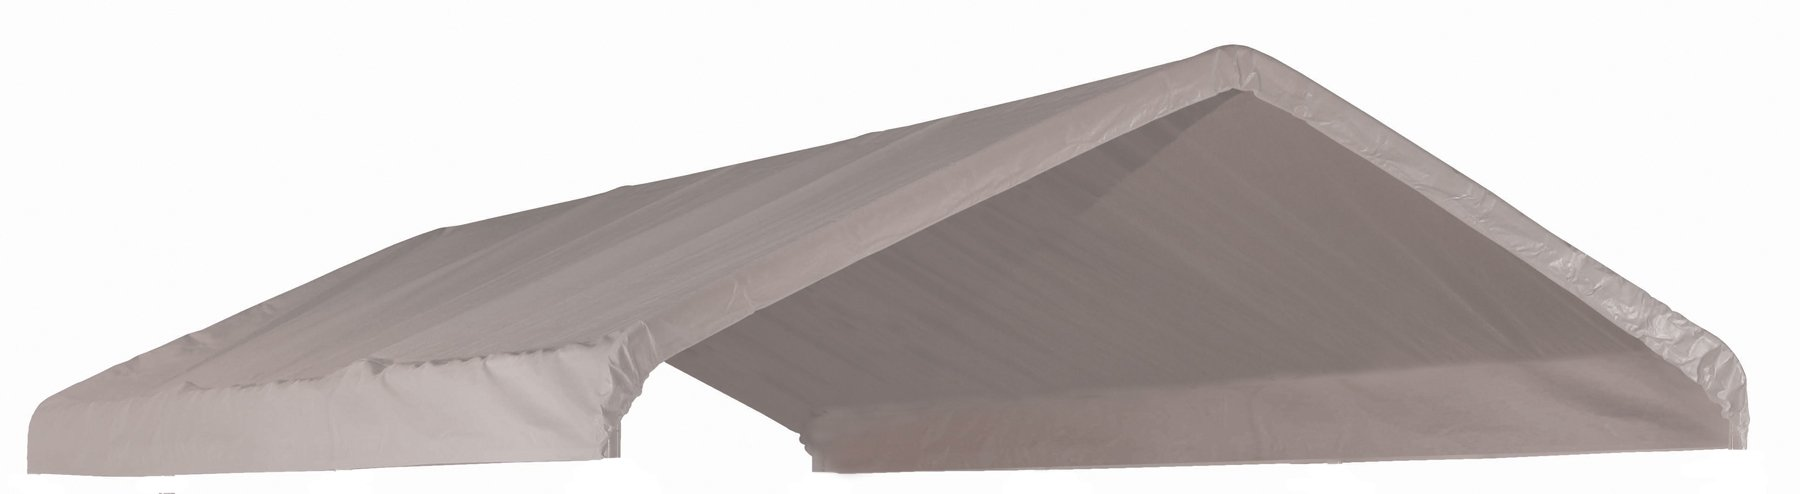 Shelterlogic 10x20 Canopy Replacement Cover : Shelterlogic feet canopy replacement cover fits